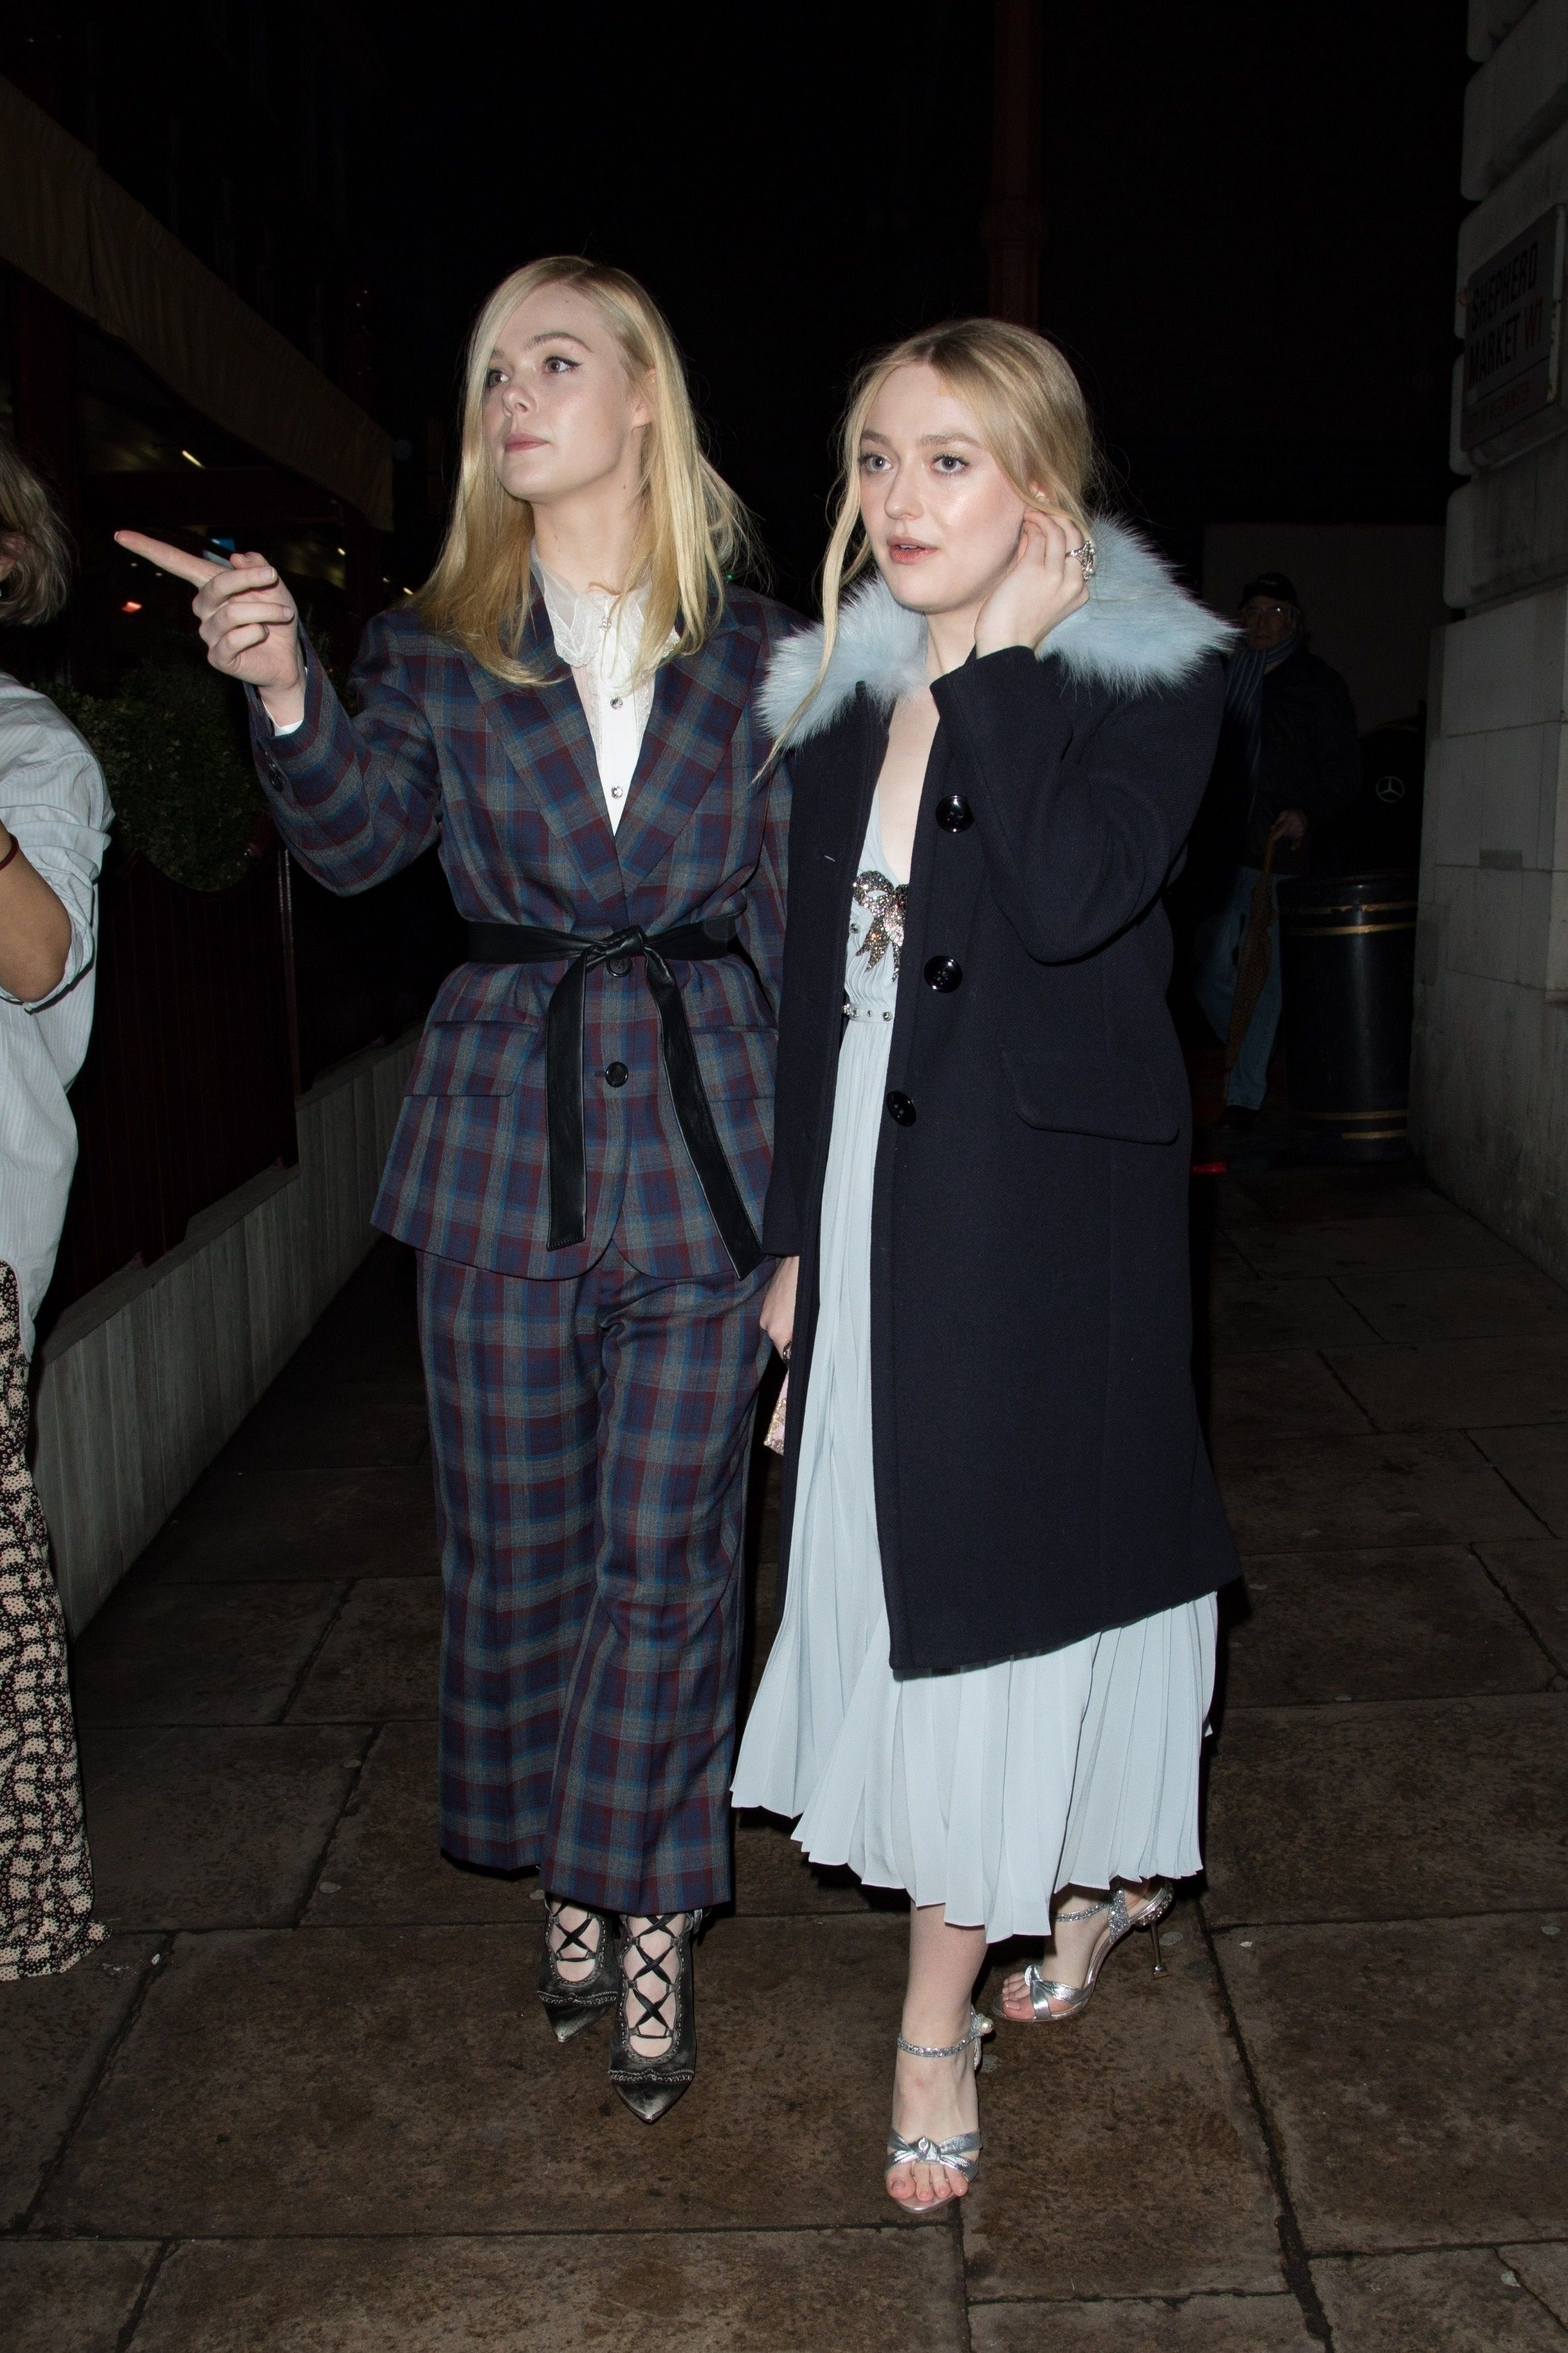 Pin on Fanning sisters